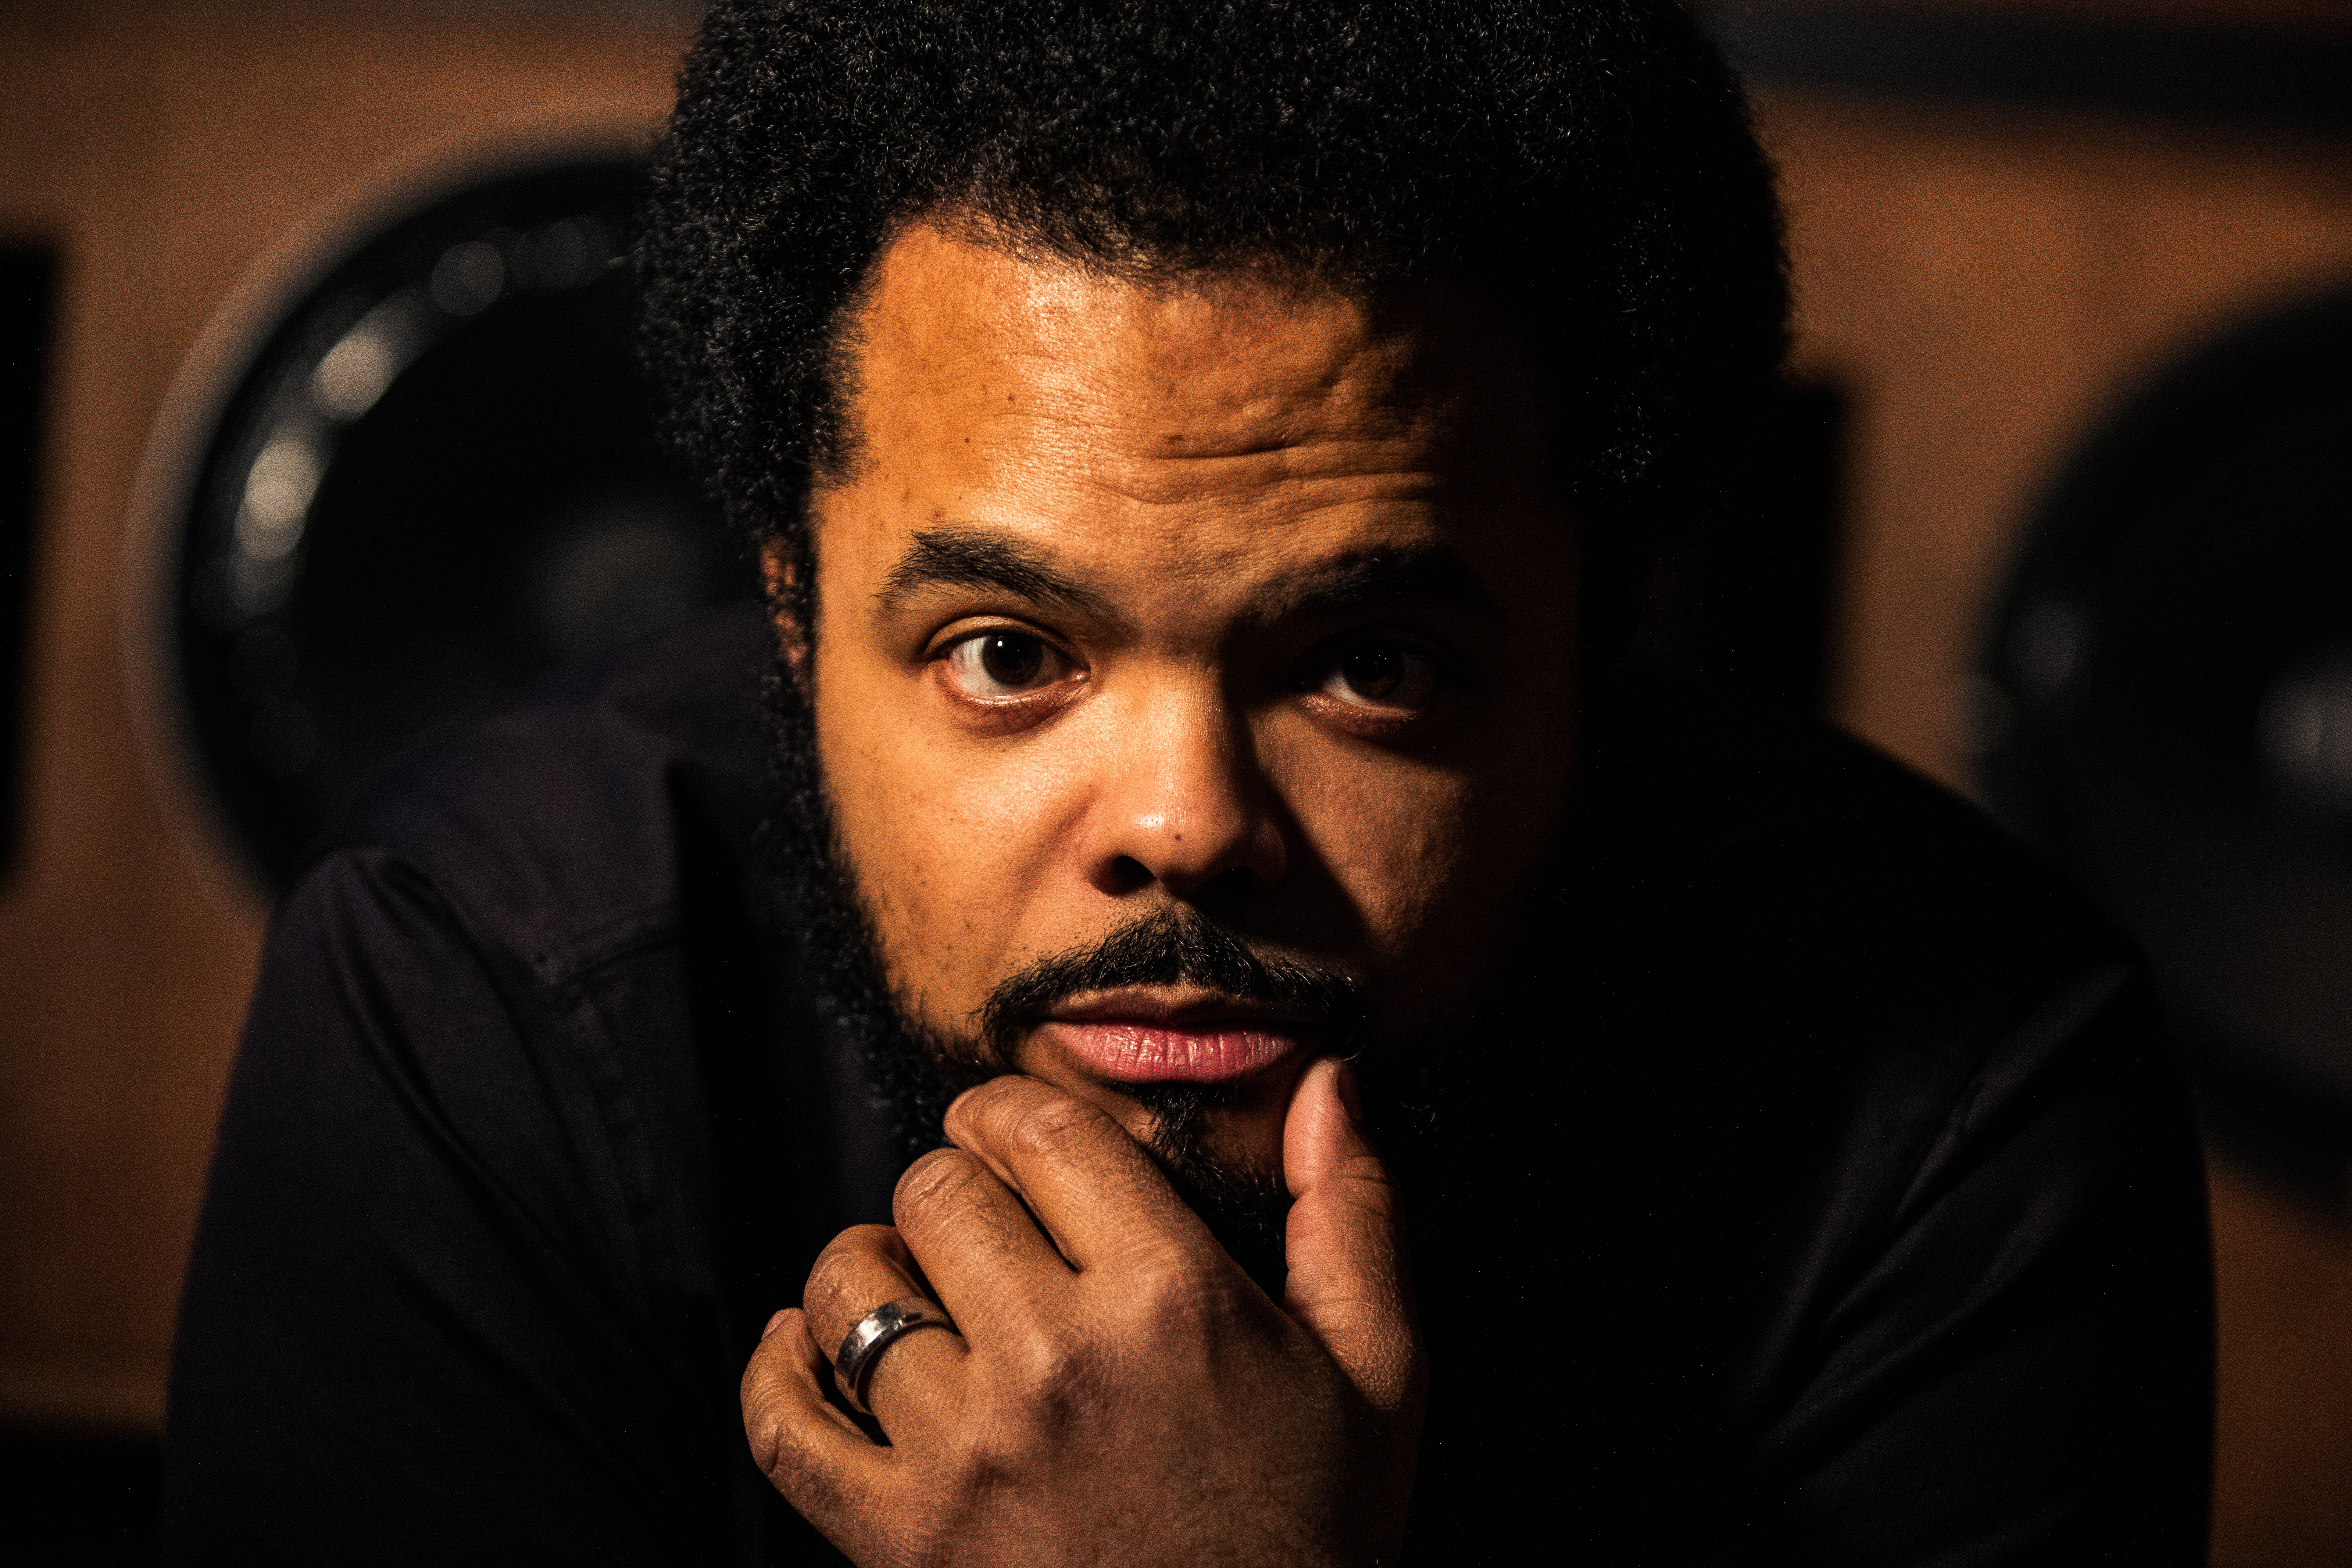 Roger Mooking (Lumenville Inc)